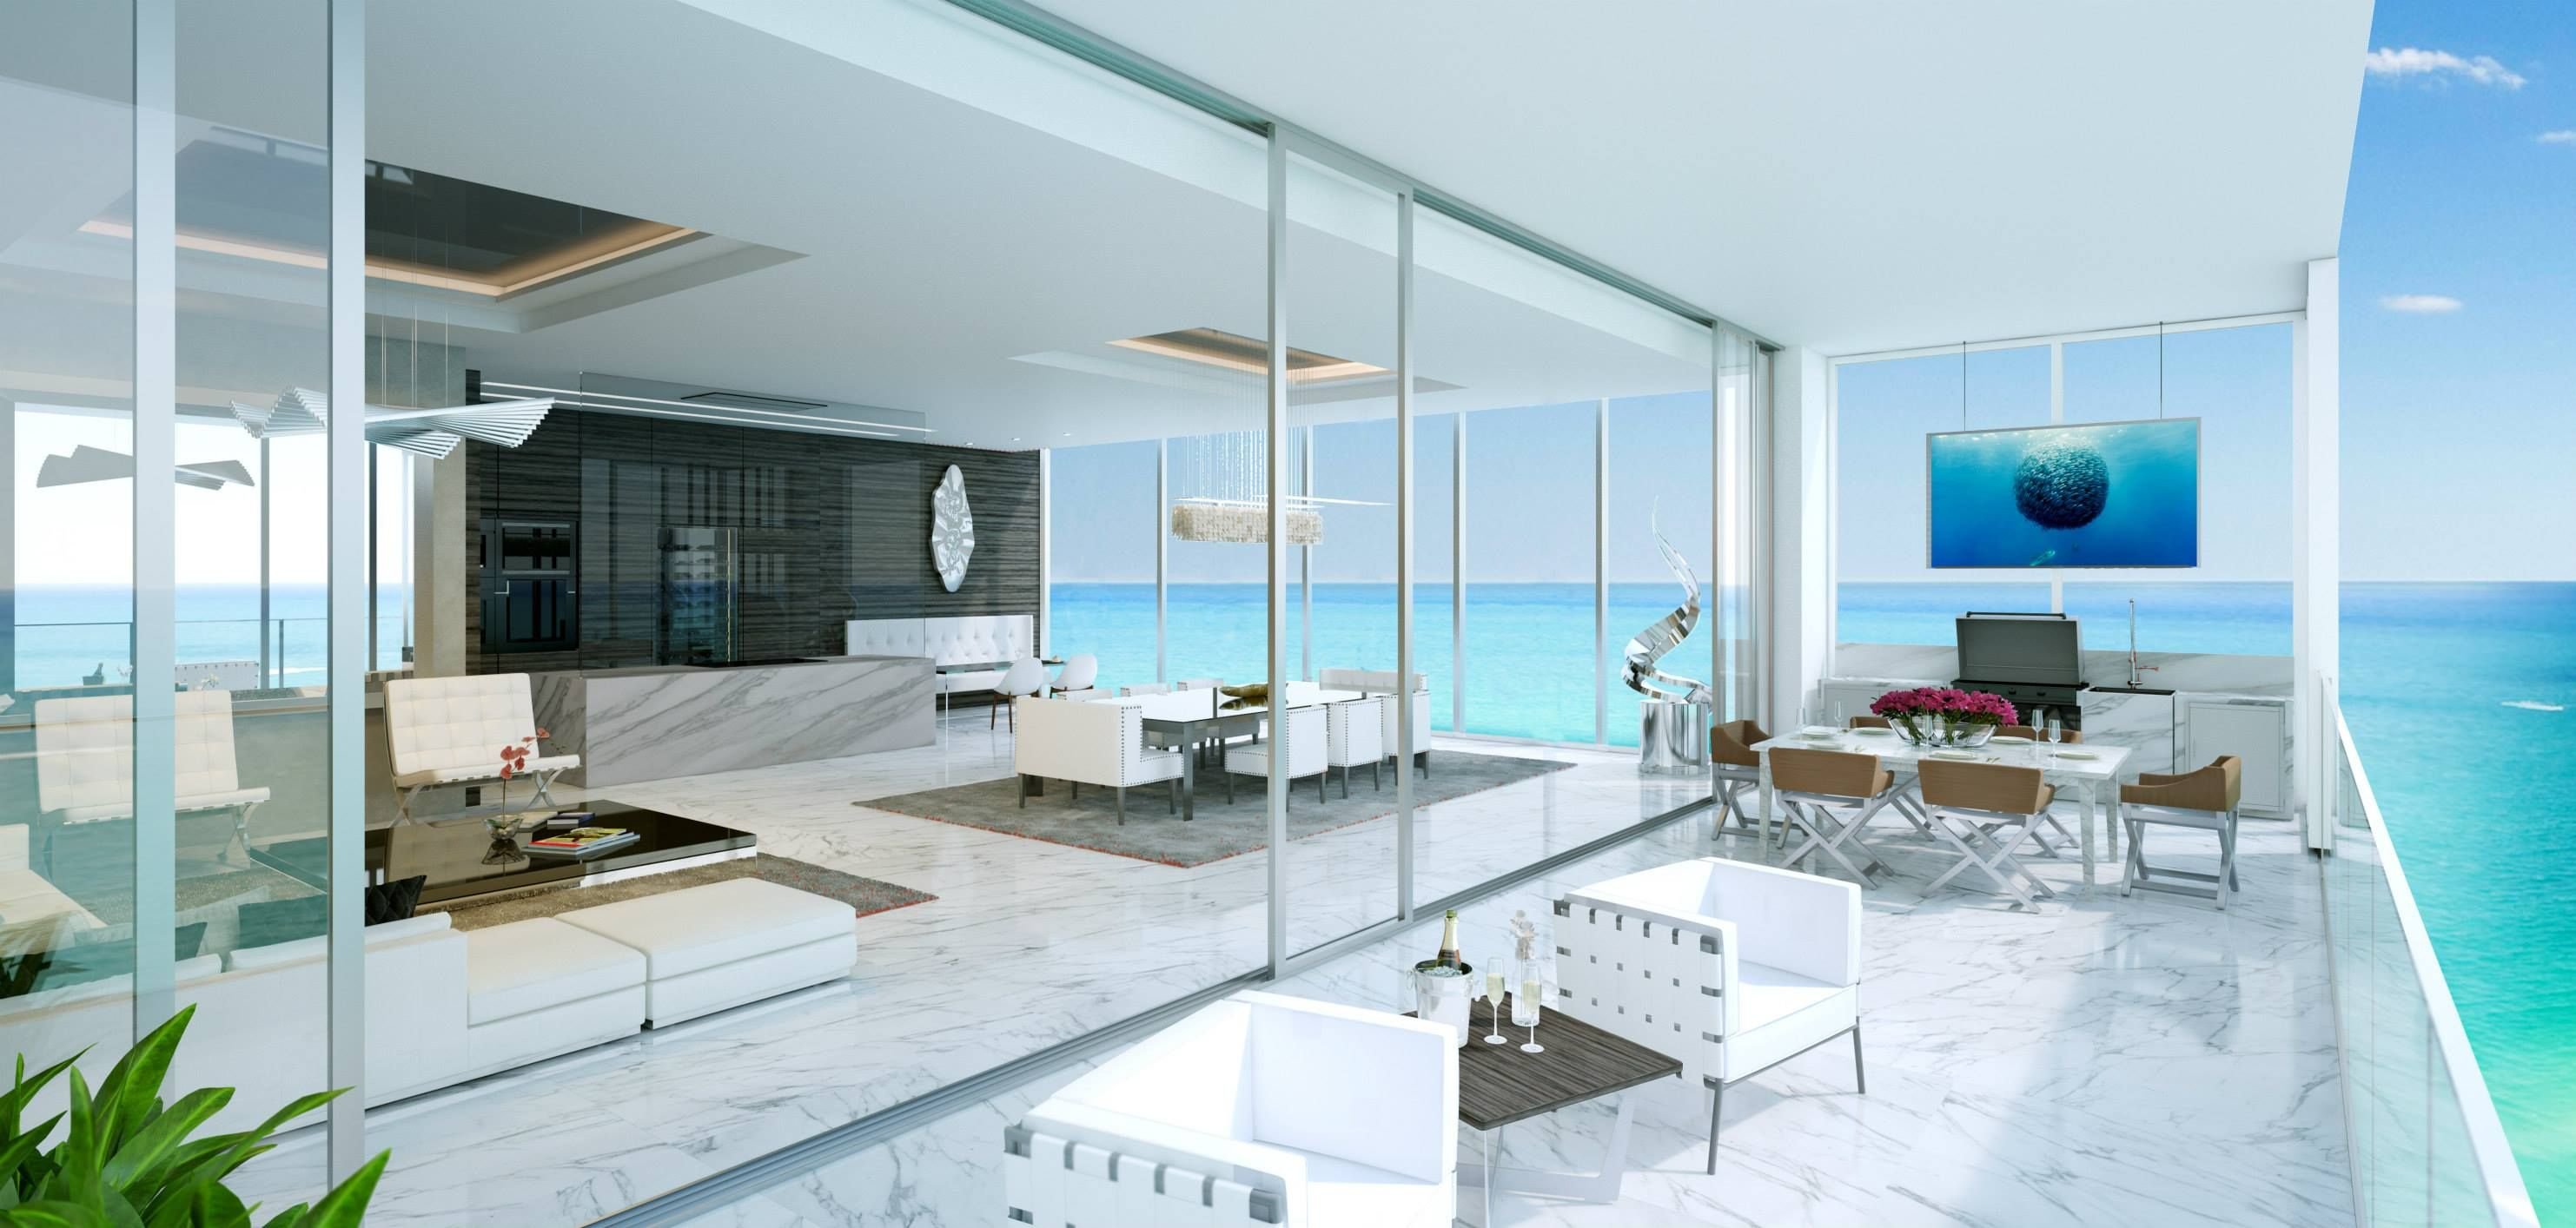 New Renderings Of Muse Sunny Isles Released   DESIGN - 01 ...